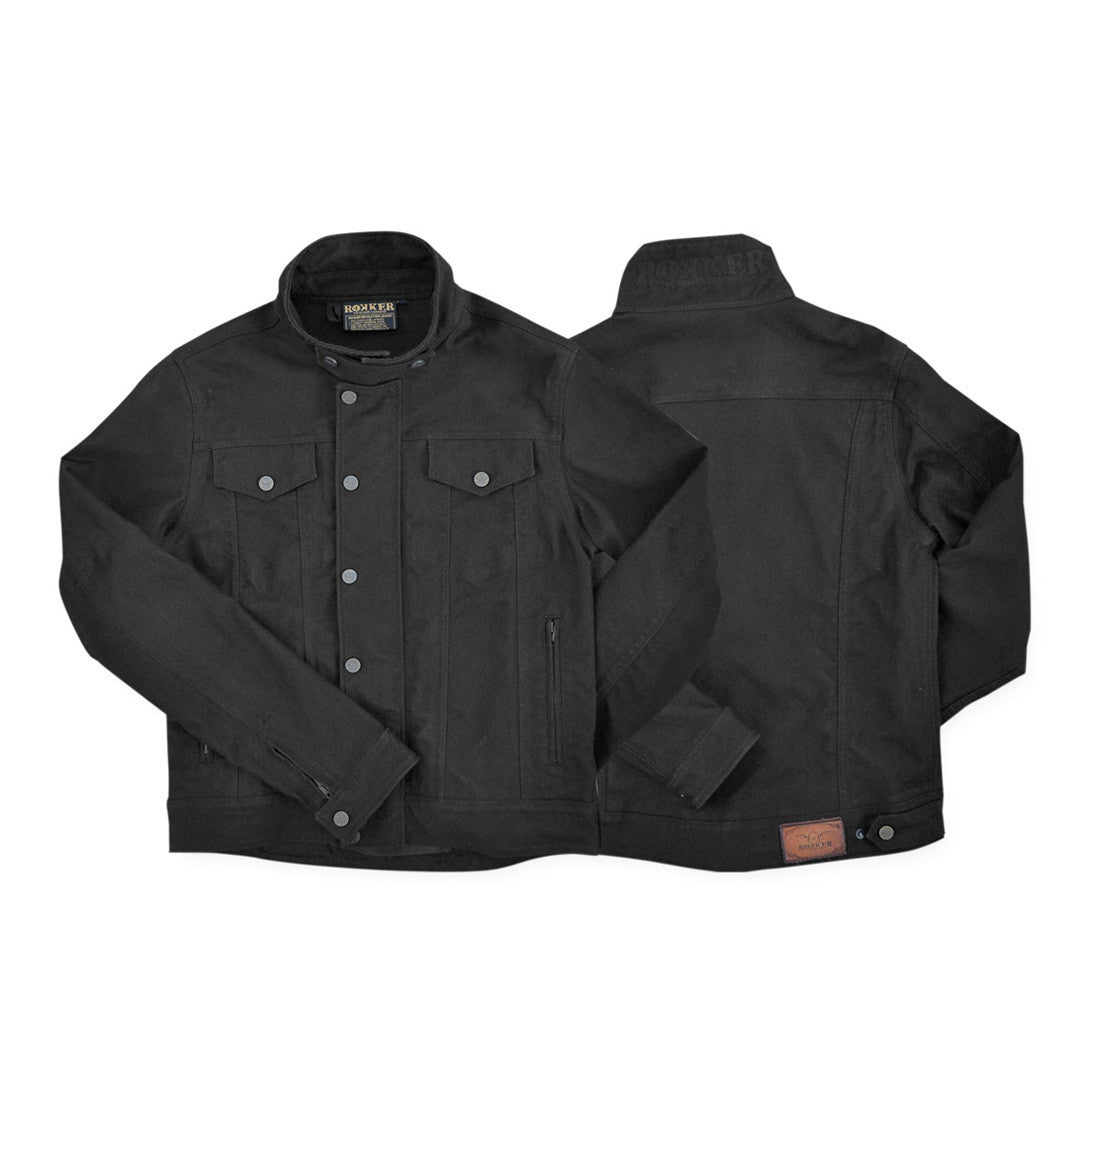 Rokker black motorcycle jacket